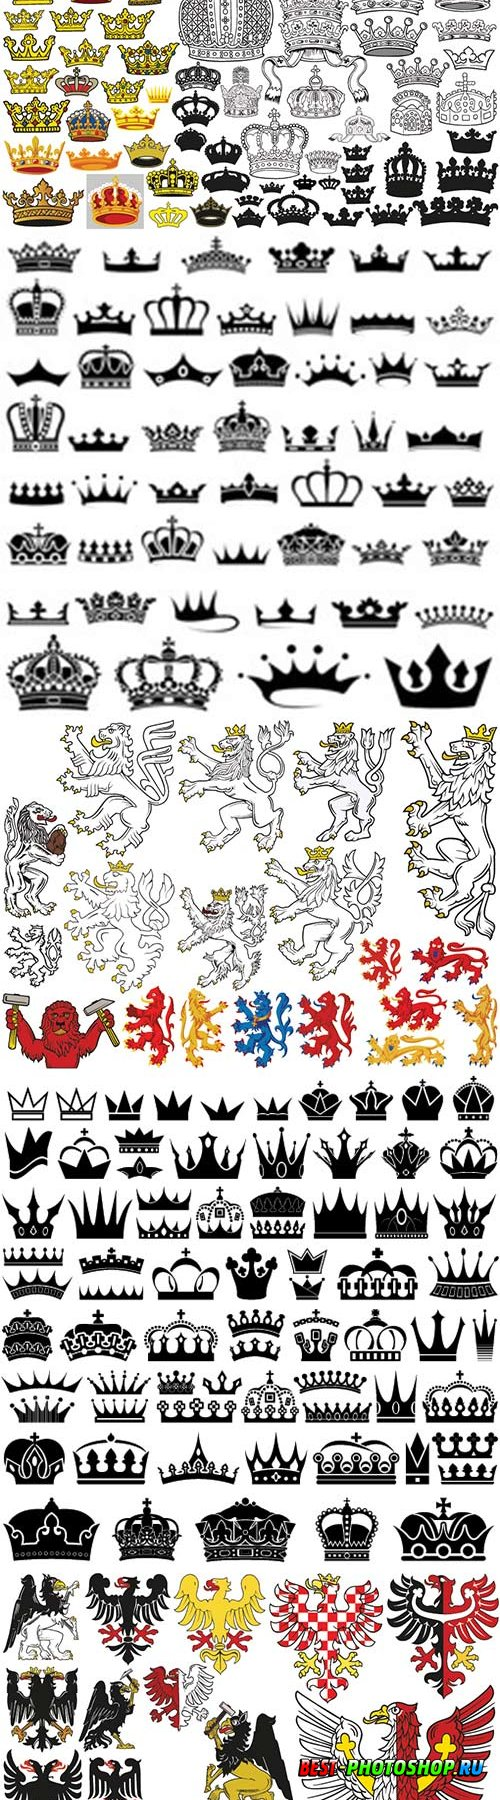 Big set of heraldic crowns in colored illustrations